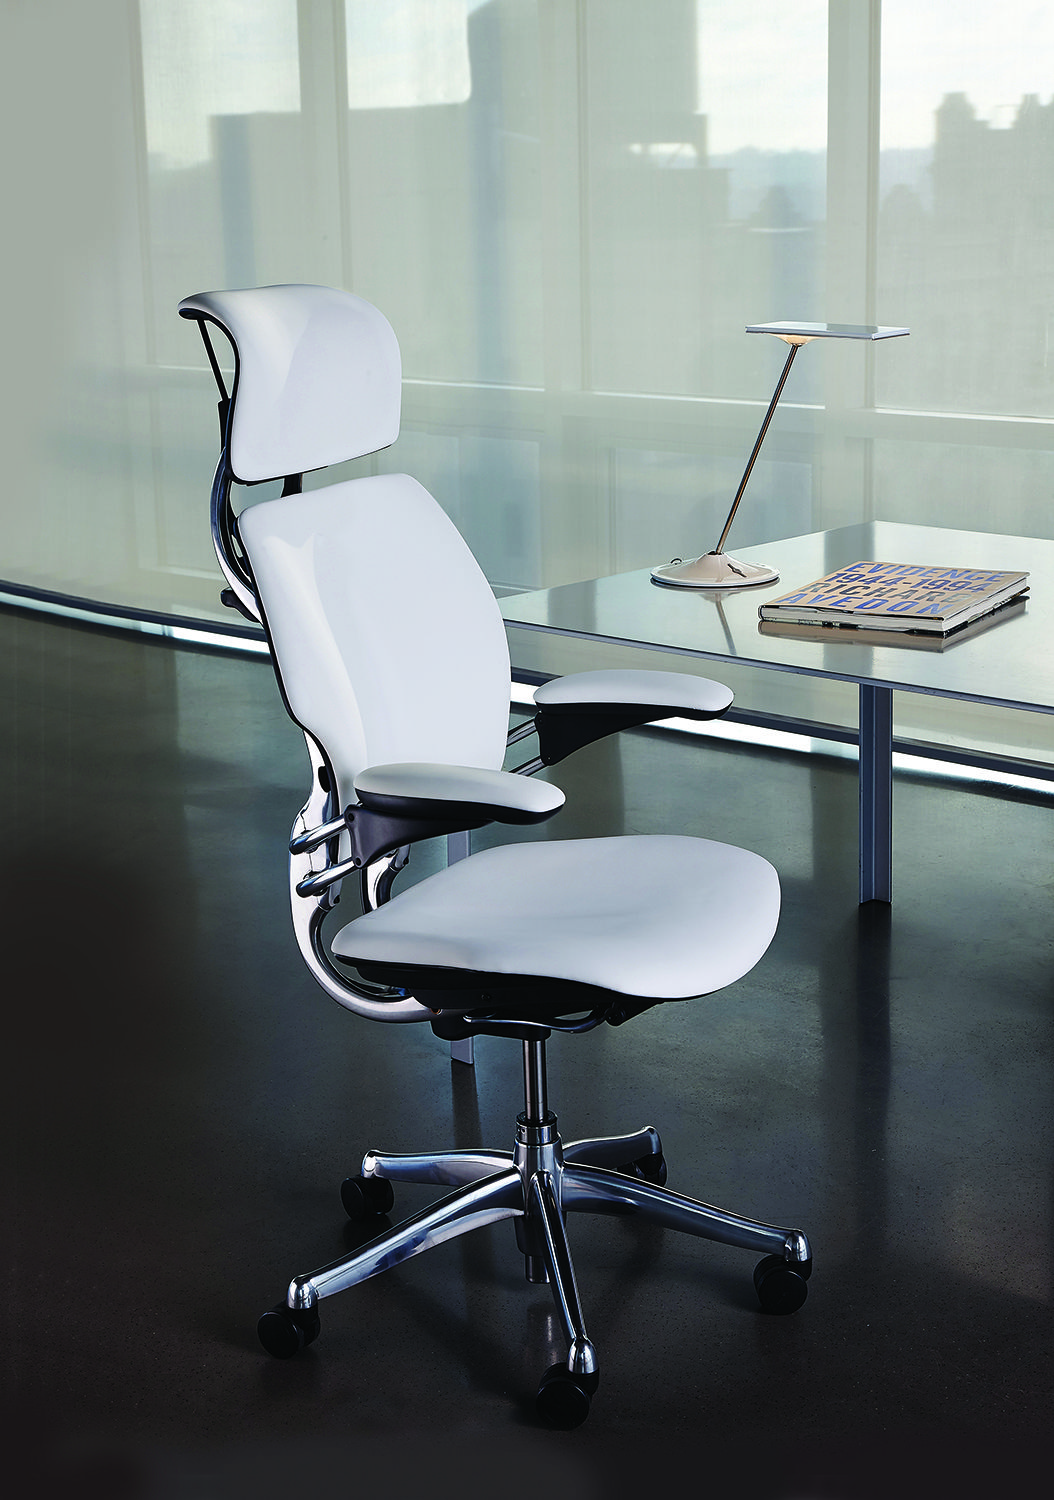 White Leather Modern Task Chair For Your Home Office Or Workspace The Ultimate In Luxury Is Humanscale Freedom Headrest Chair Work Chair Task Chair